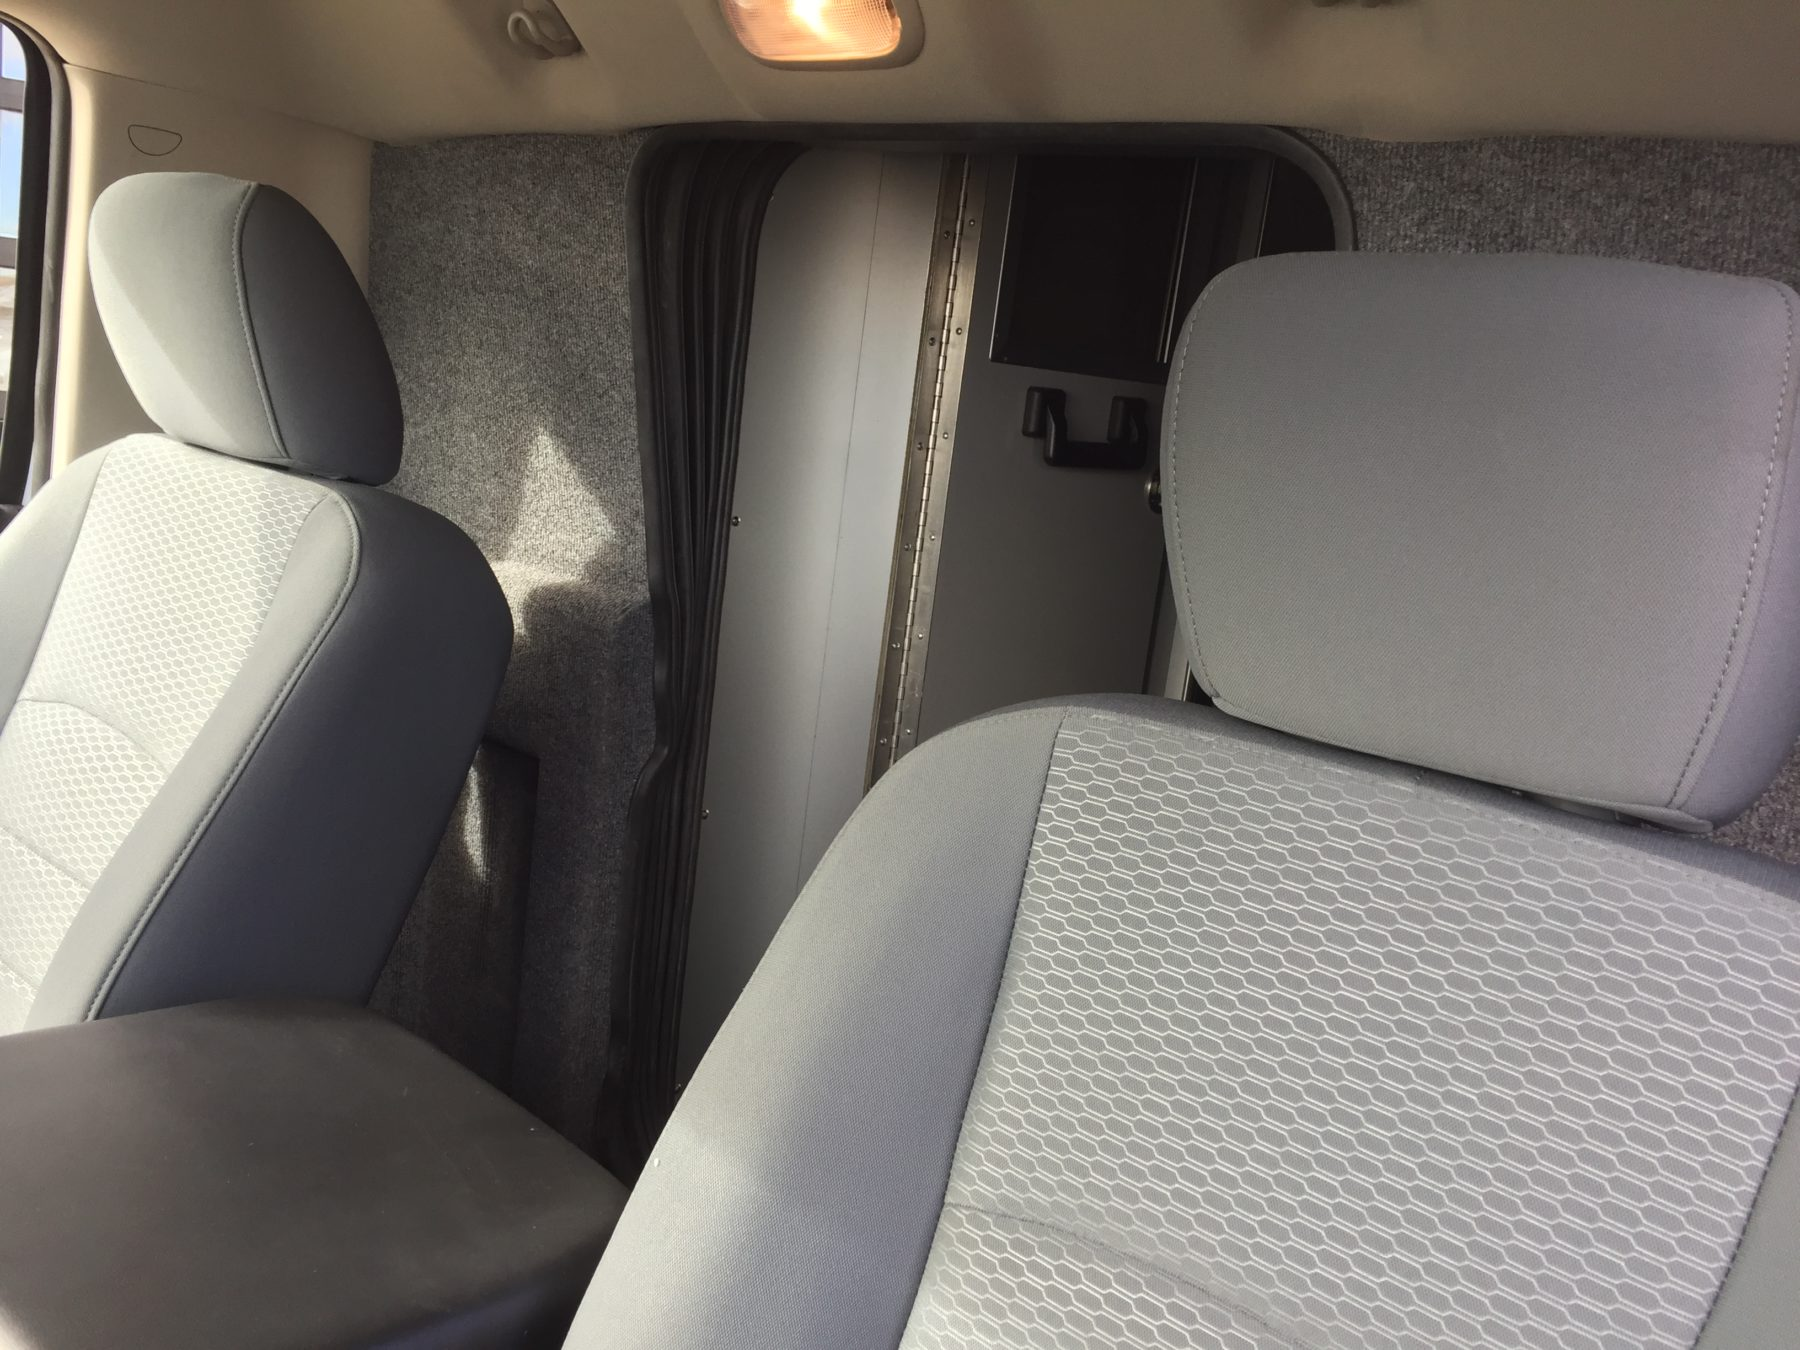 2017 Ram 4500 4x4 Heavy Duty Ambulance For Sale – Picture 20